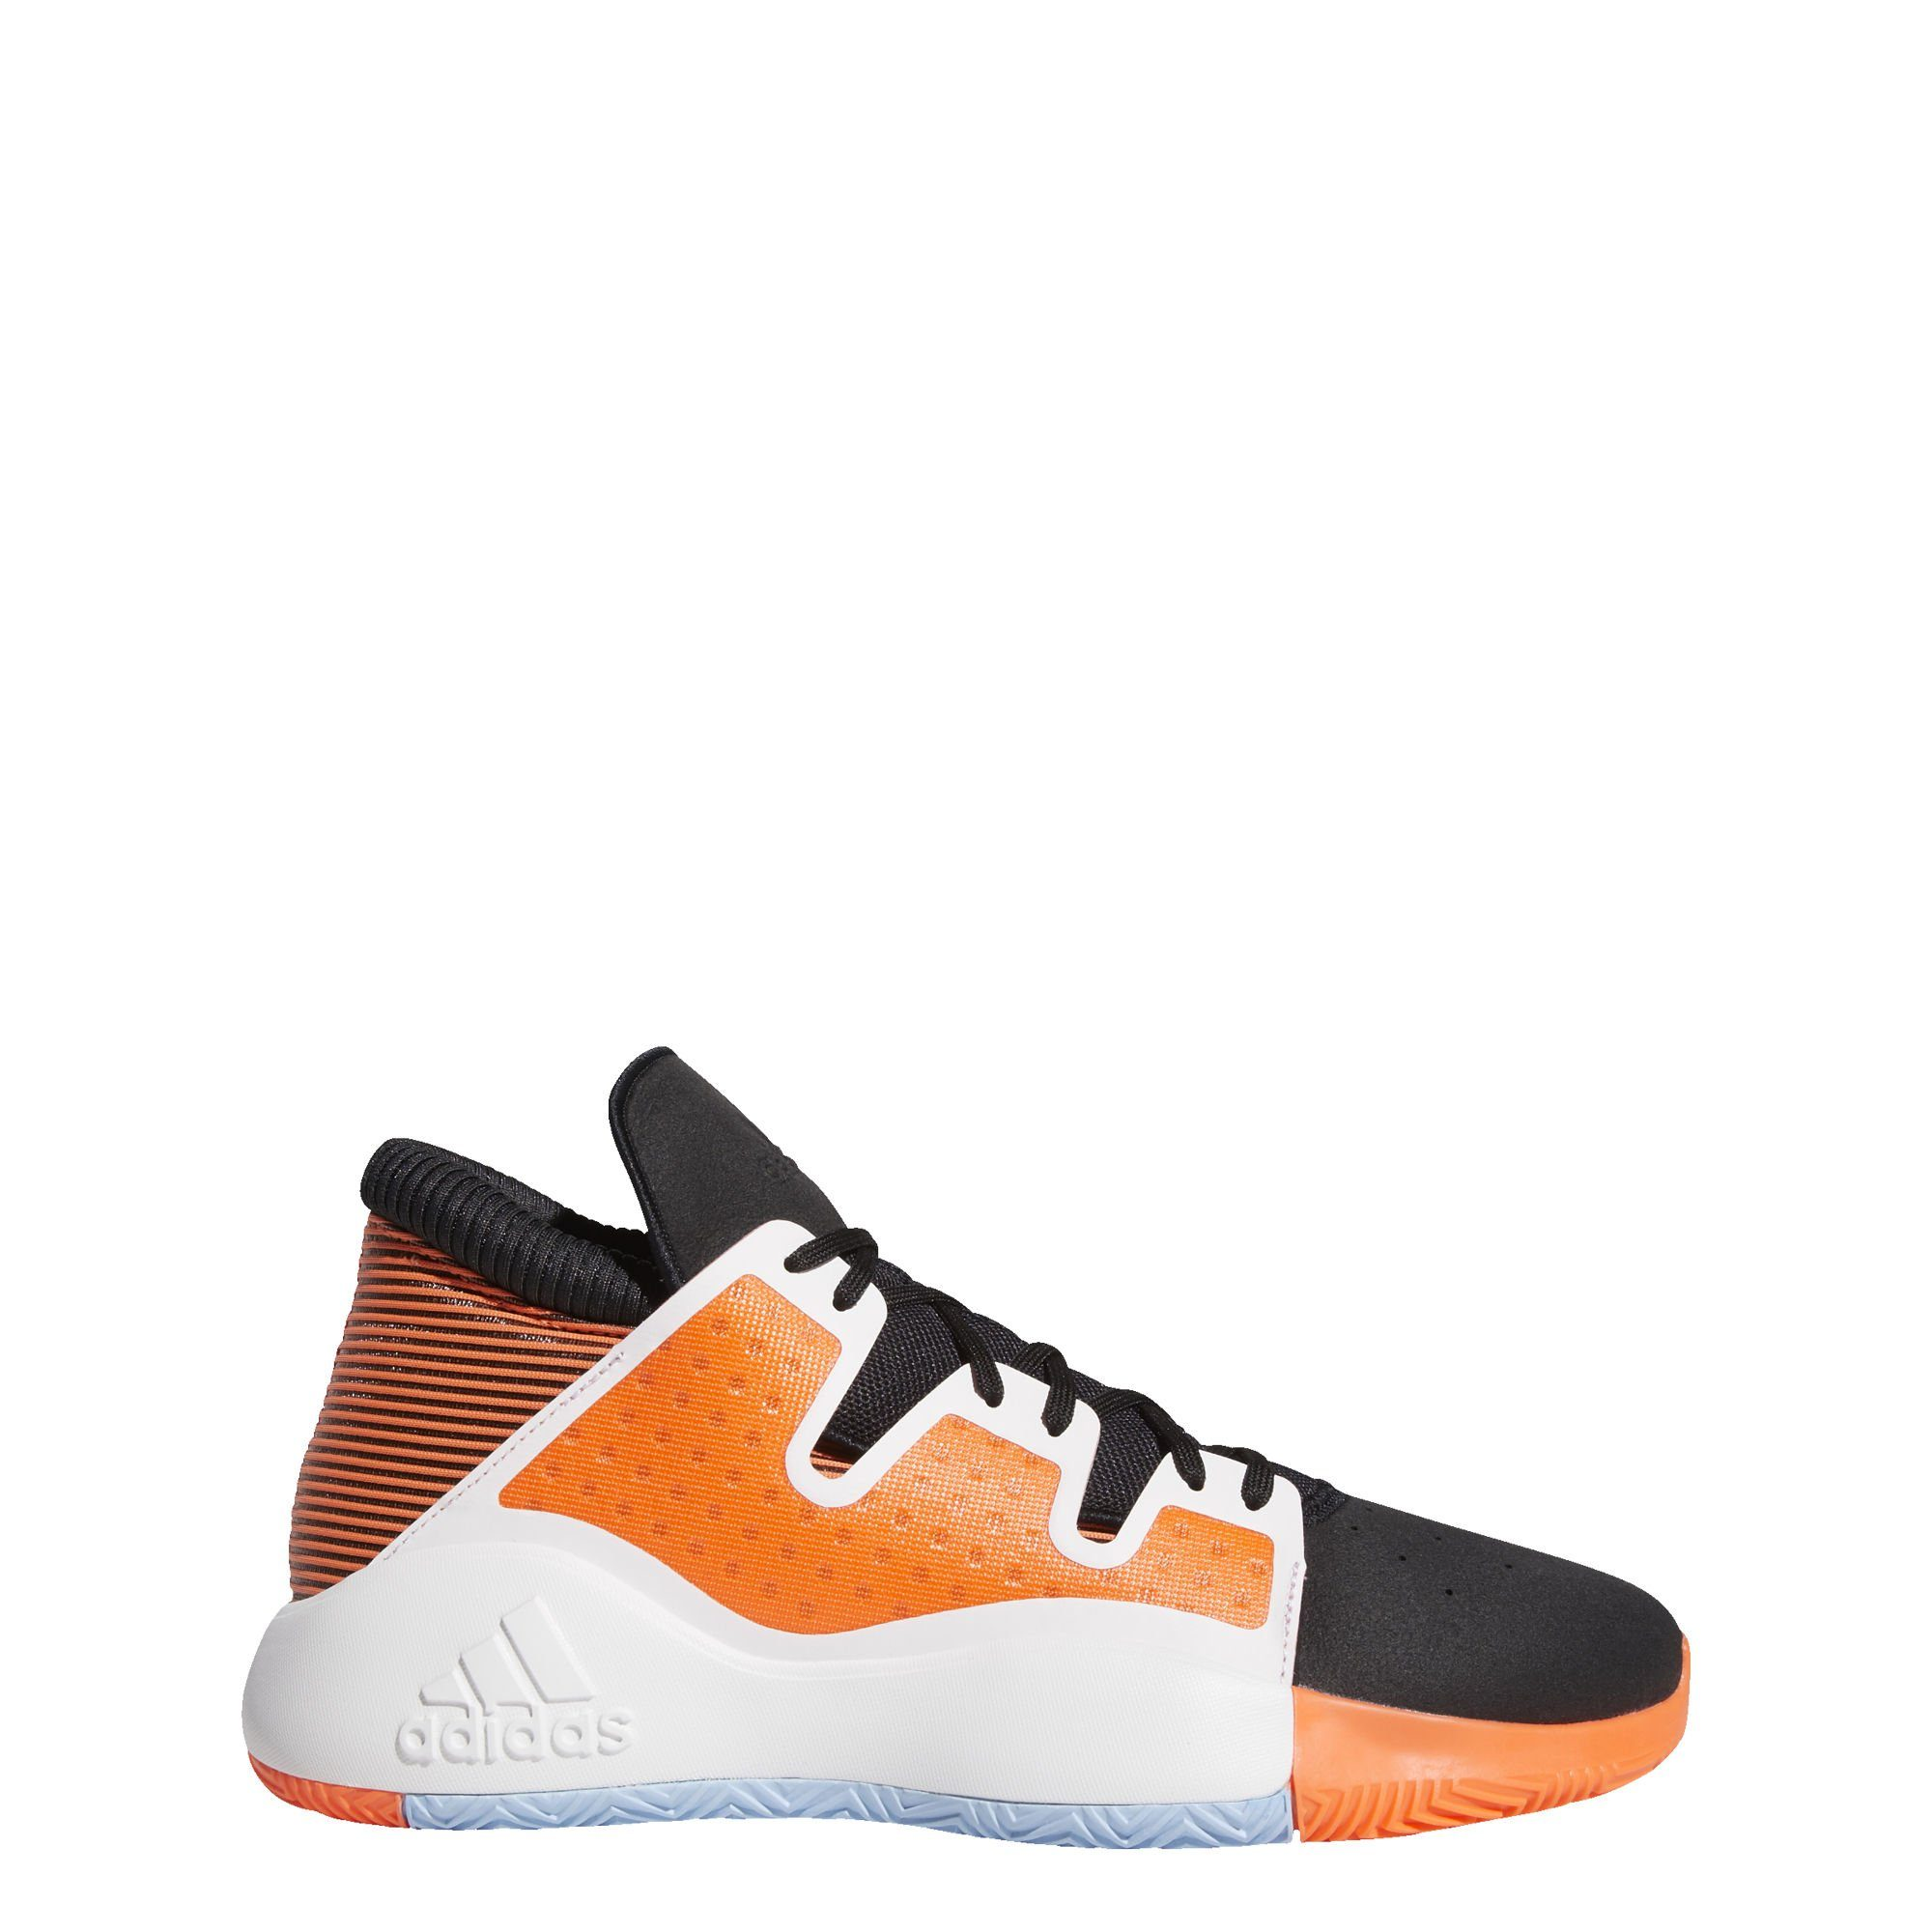 adidas Performance »Pro Vision Schuh« Basketballschuh Basketballschuh online kaufen | OTTO